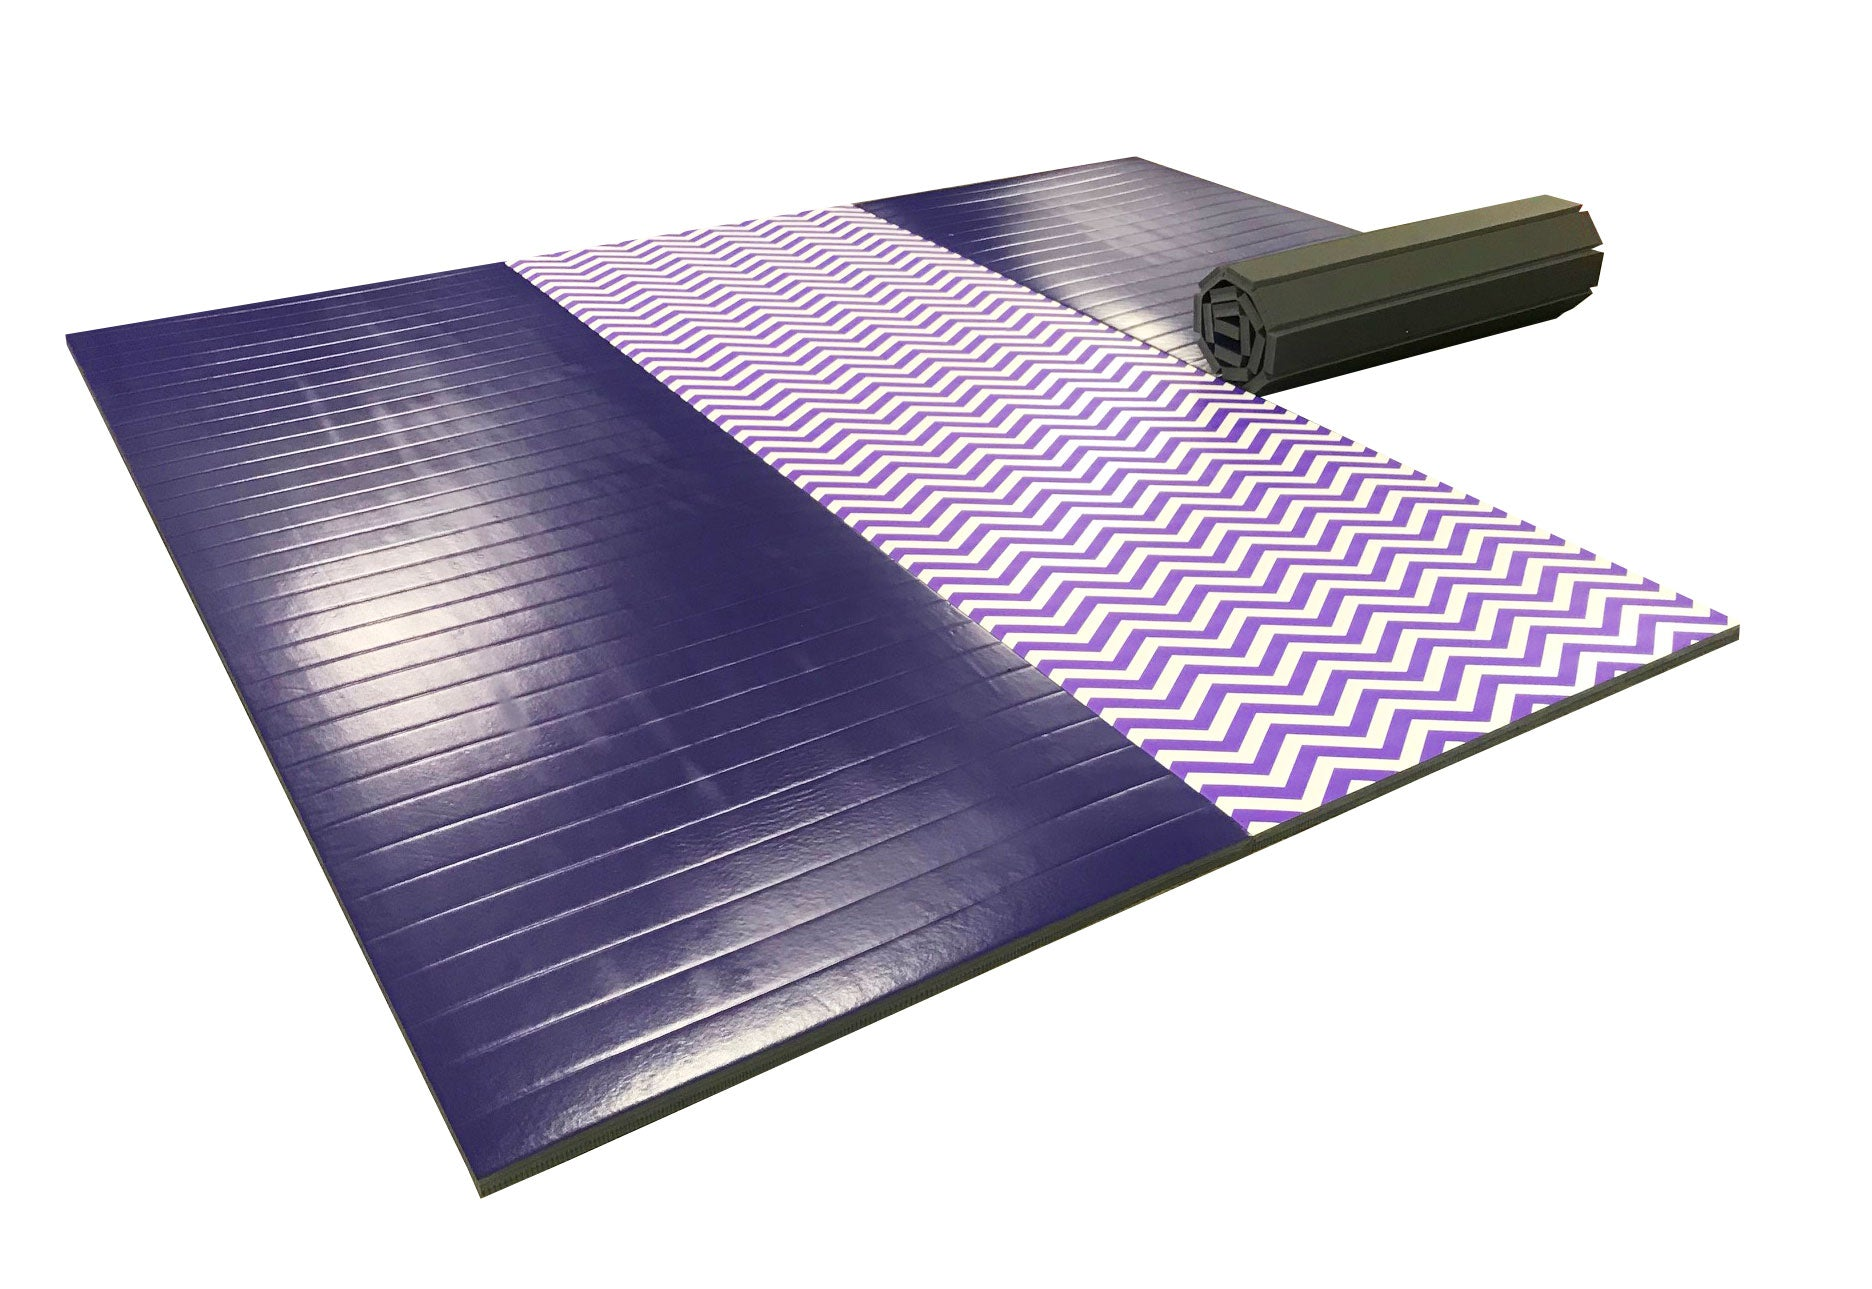 Purple gym floor mat, gymnastic mat, cheer mat, home mat